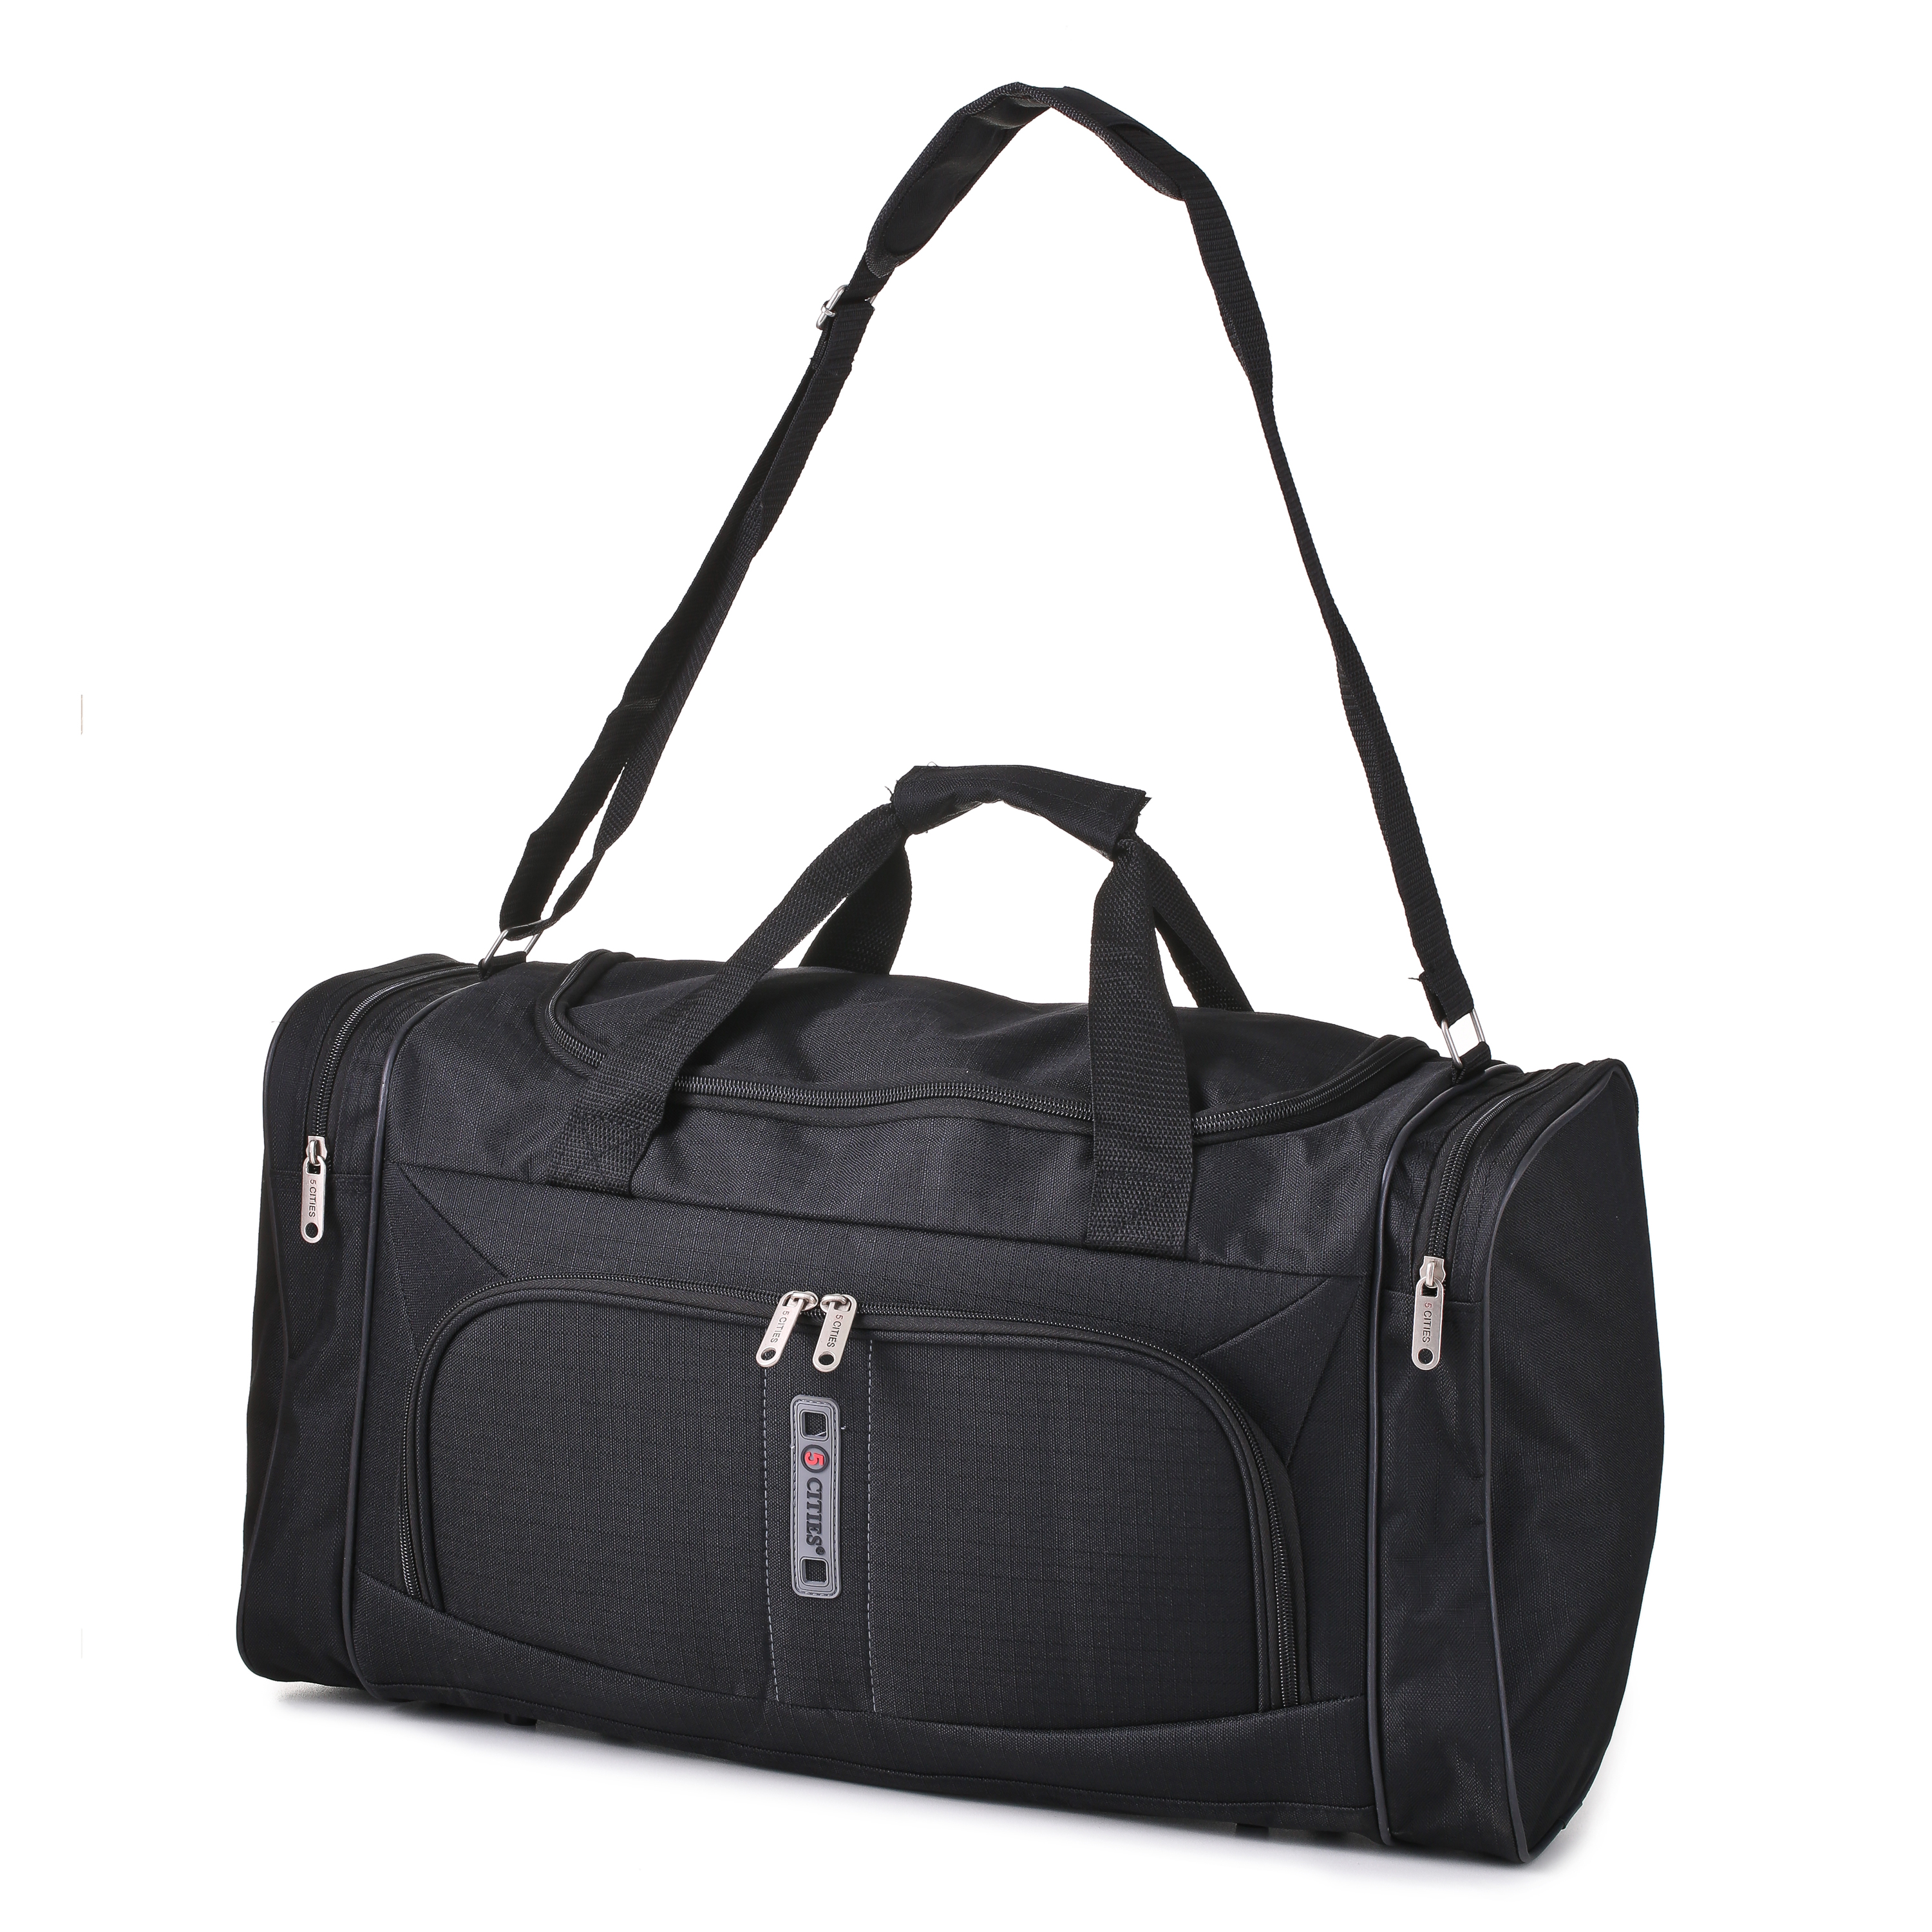 5Cities Travel Cabin Hand Luggage Lightweight Holdall Bag Black HOLD602